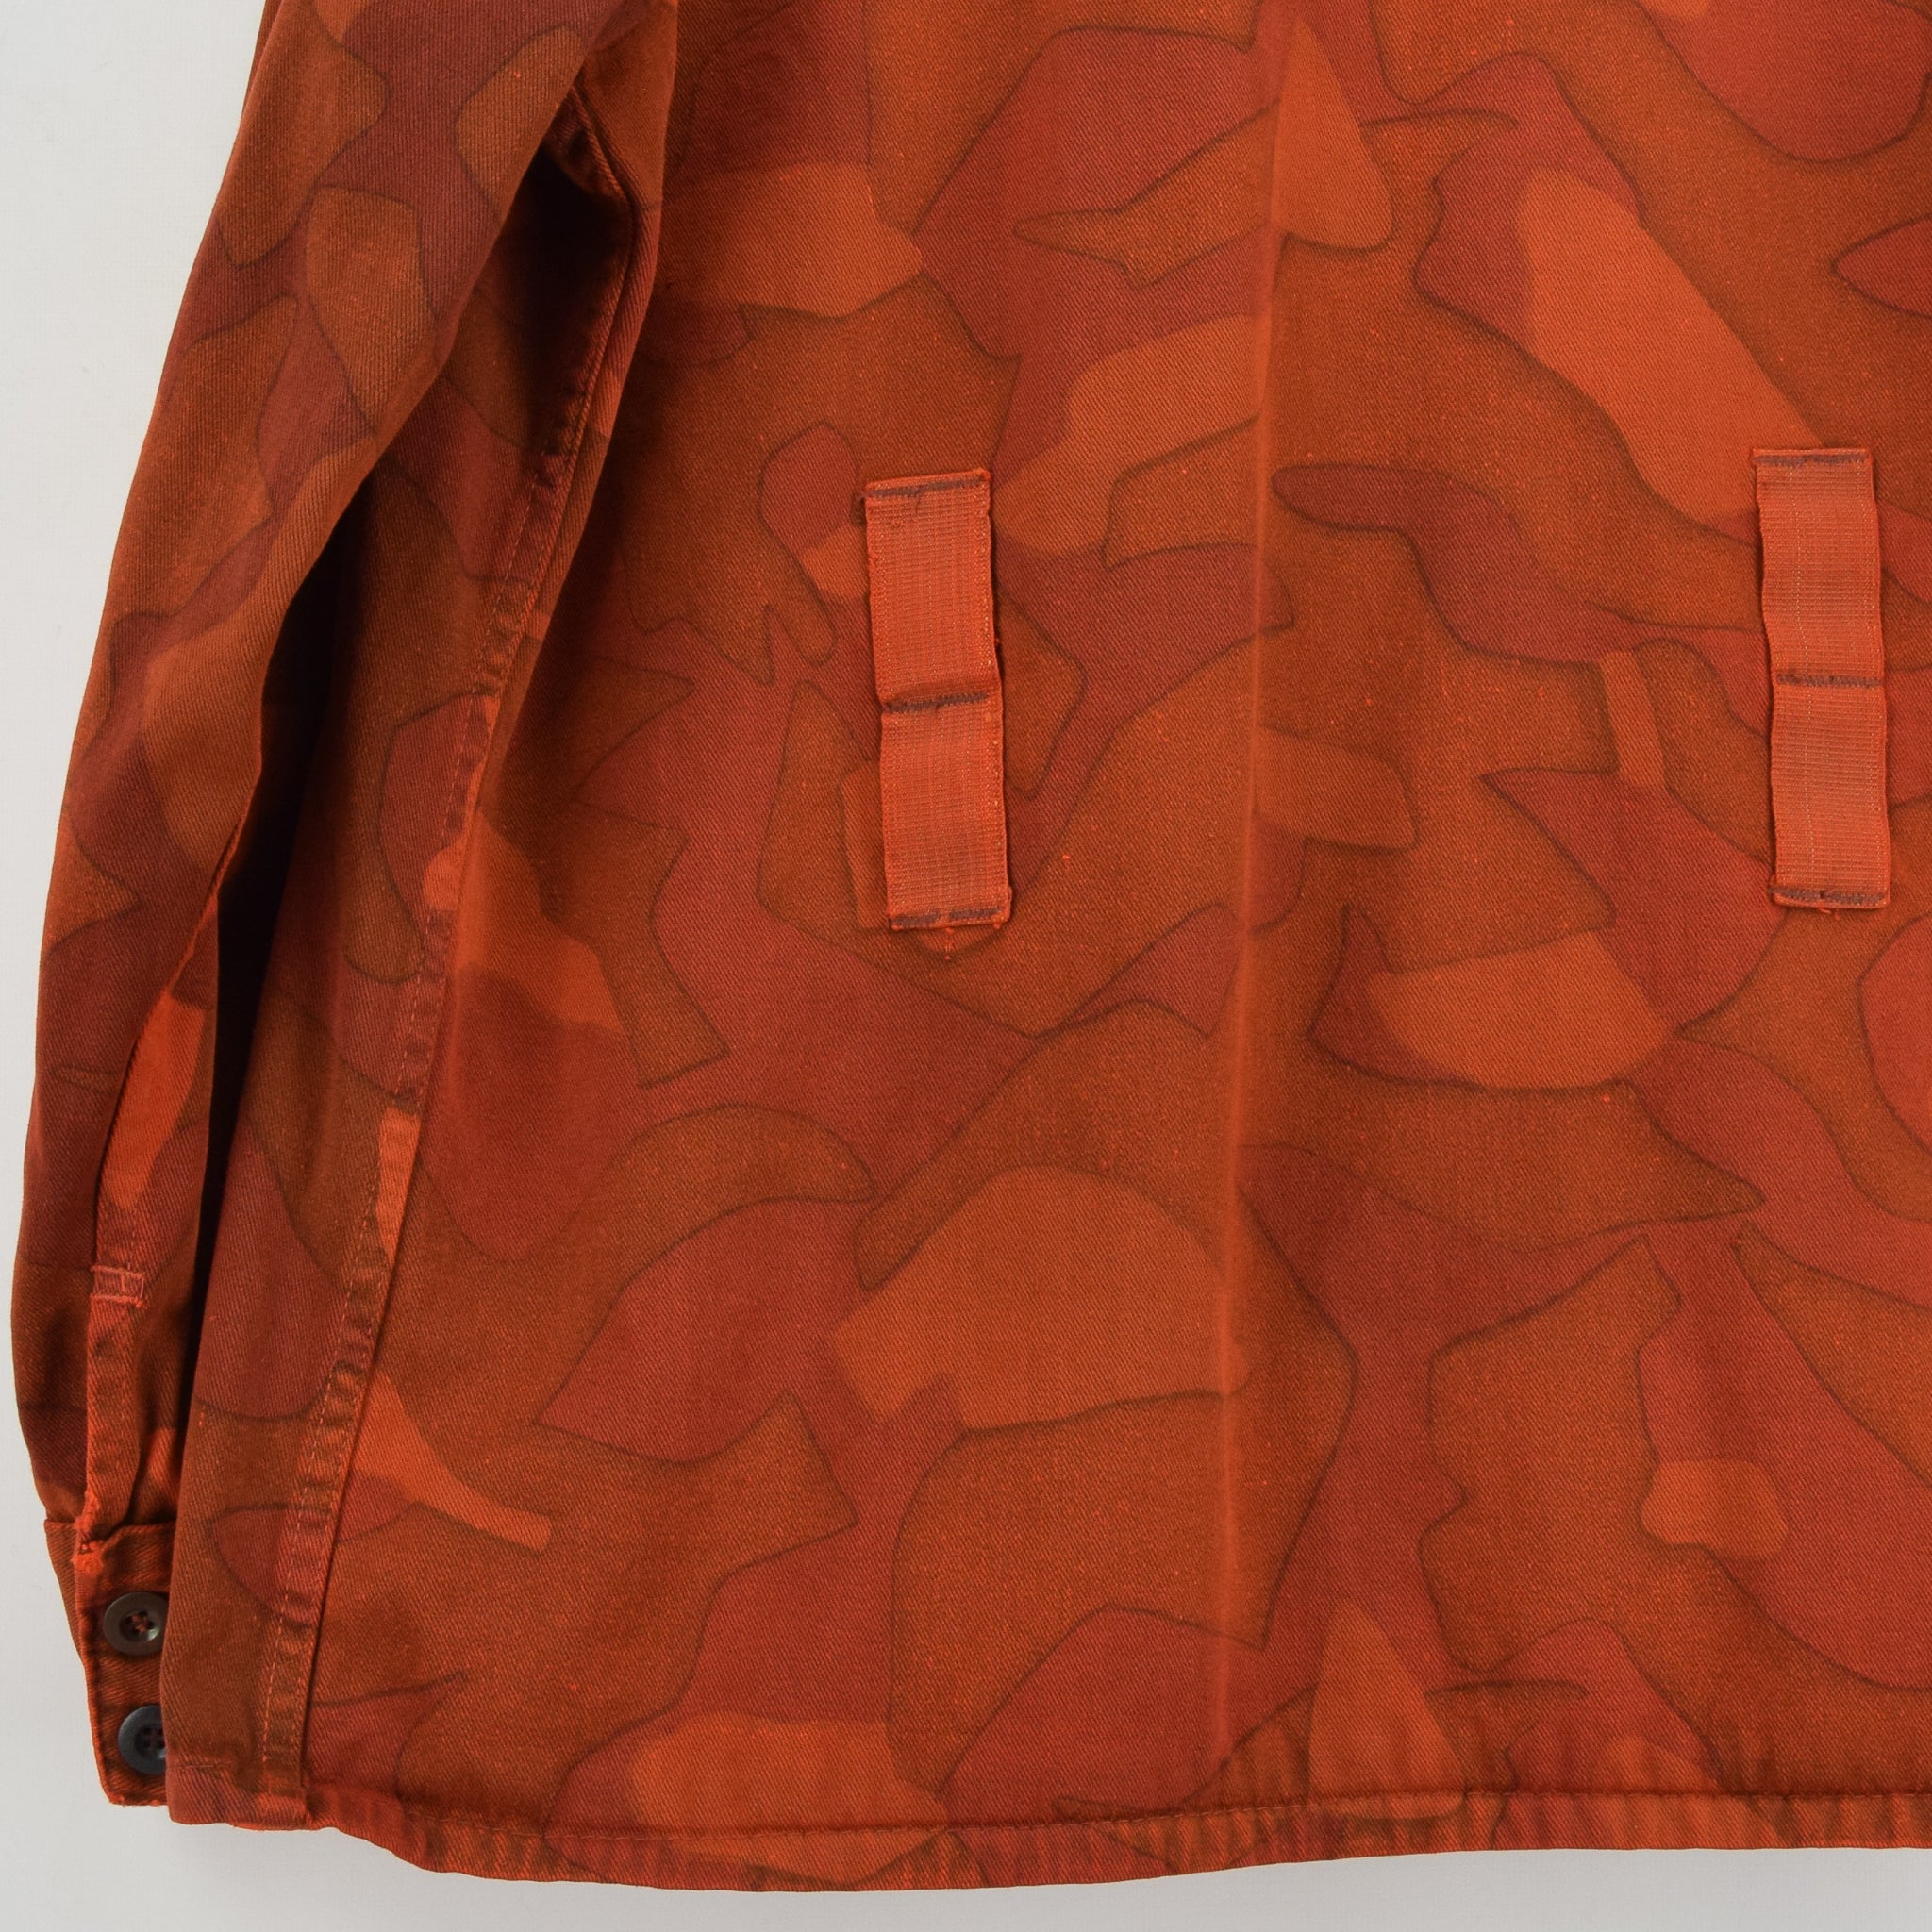 Vintage 60s Military Finnish Army Orange Overdyed Camo Mountain Field Jacket L back hem